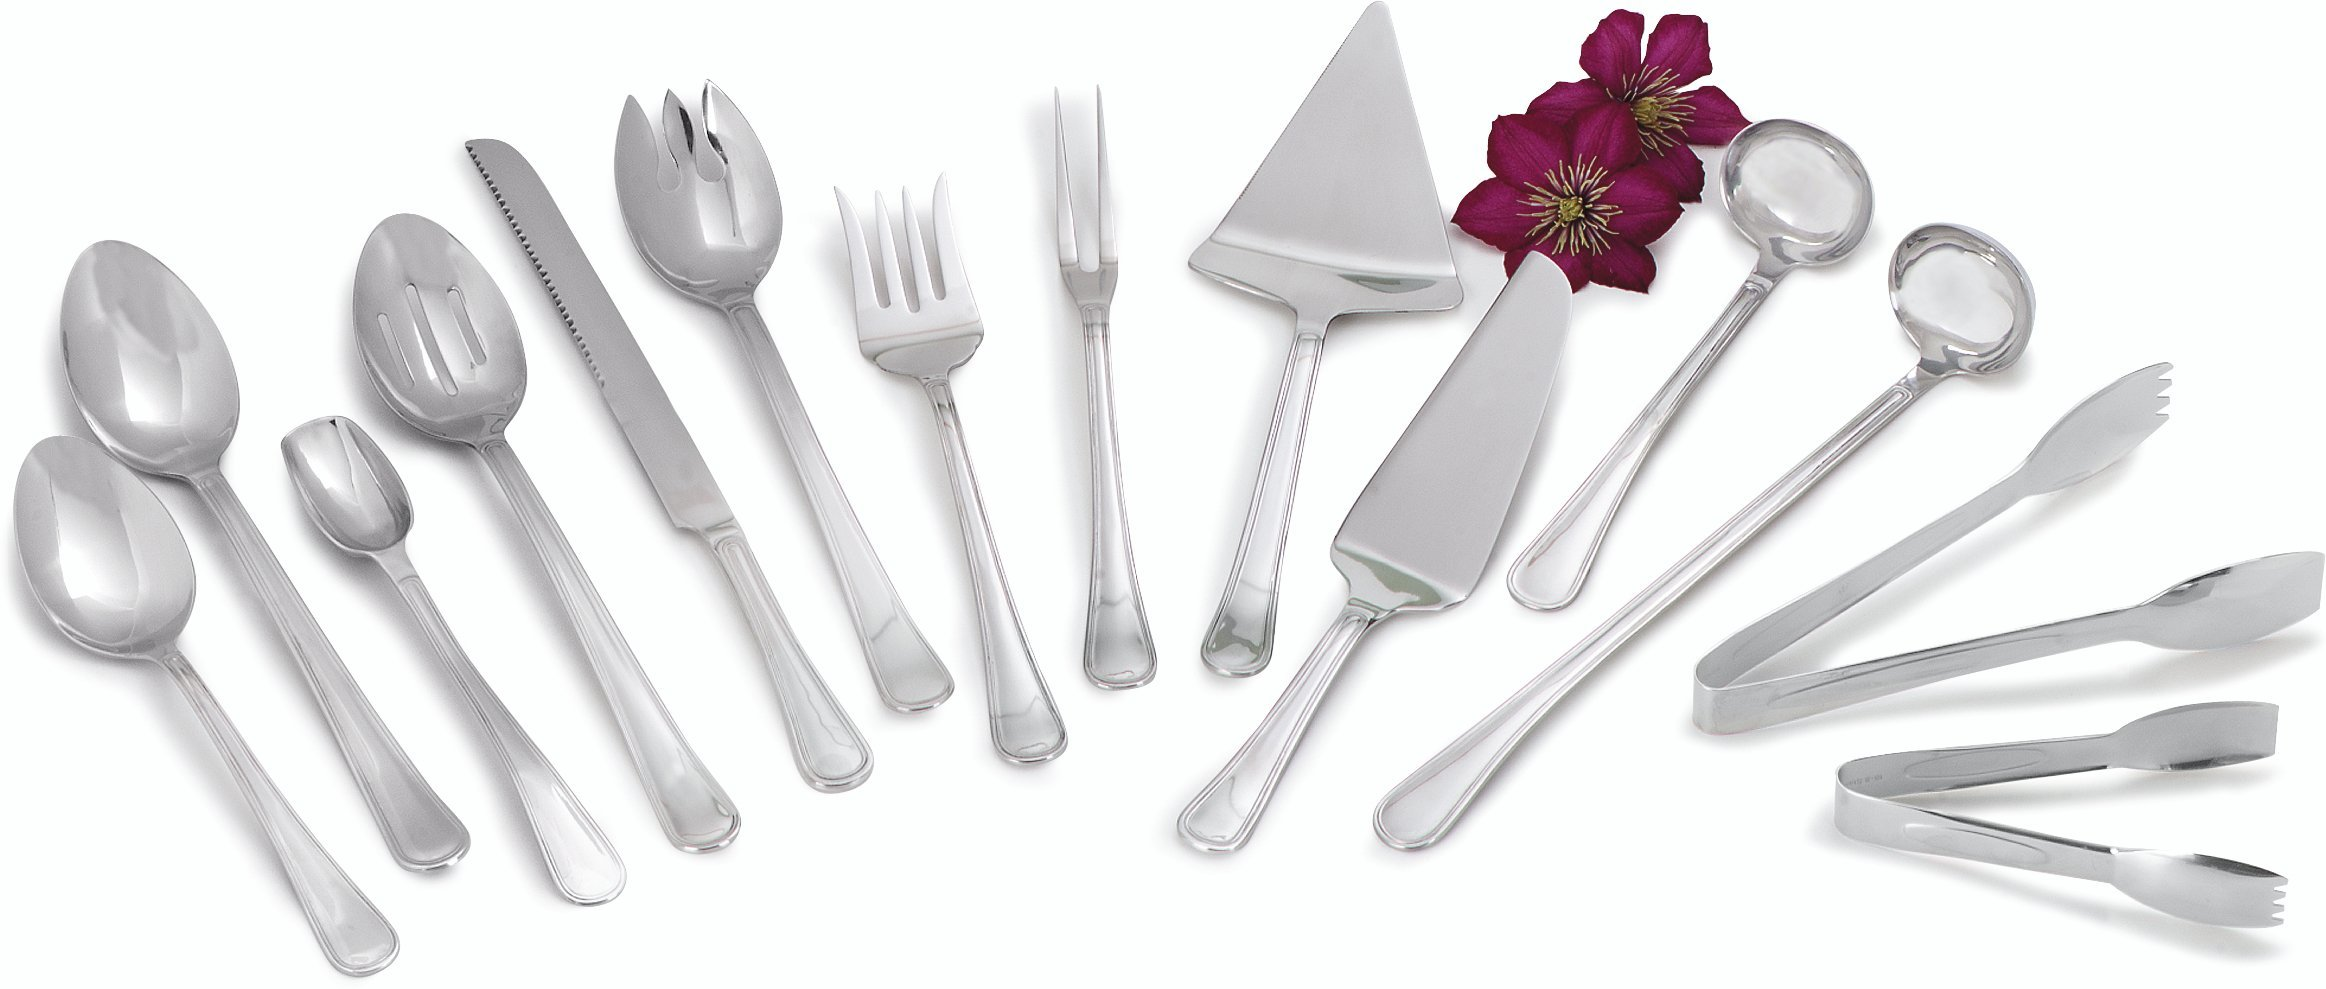 Carlisle 609001 Aria Stainless Steel Heavy-Duty Solid Spoon, 12'' (Pack of 12)